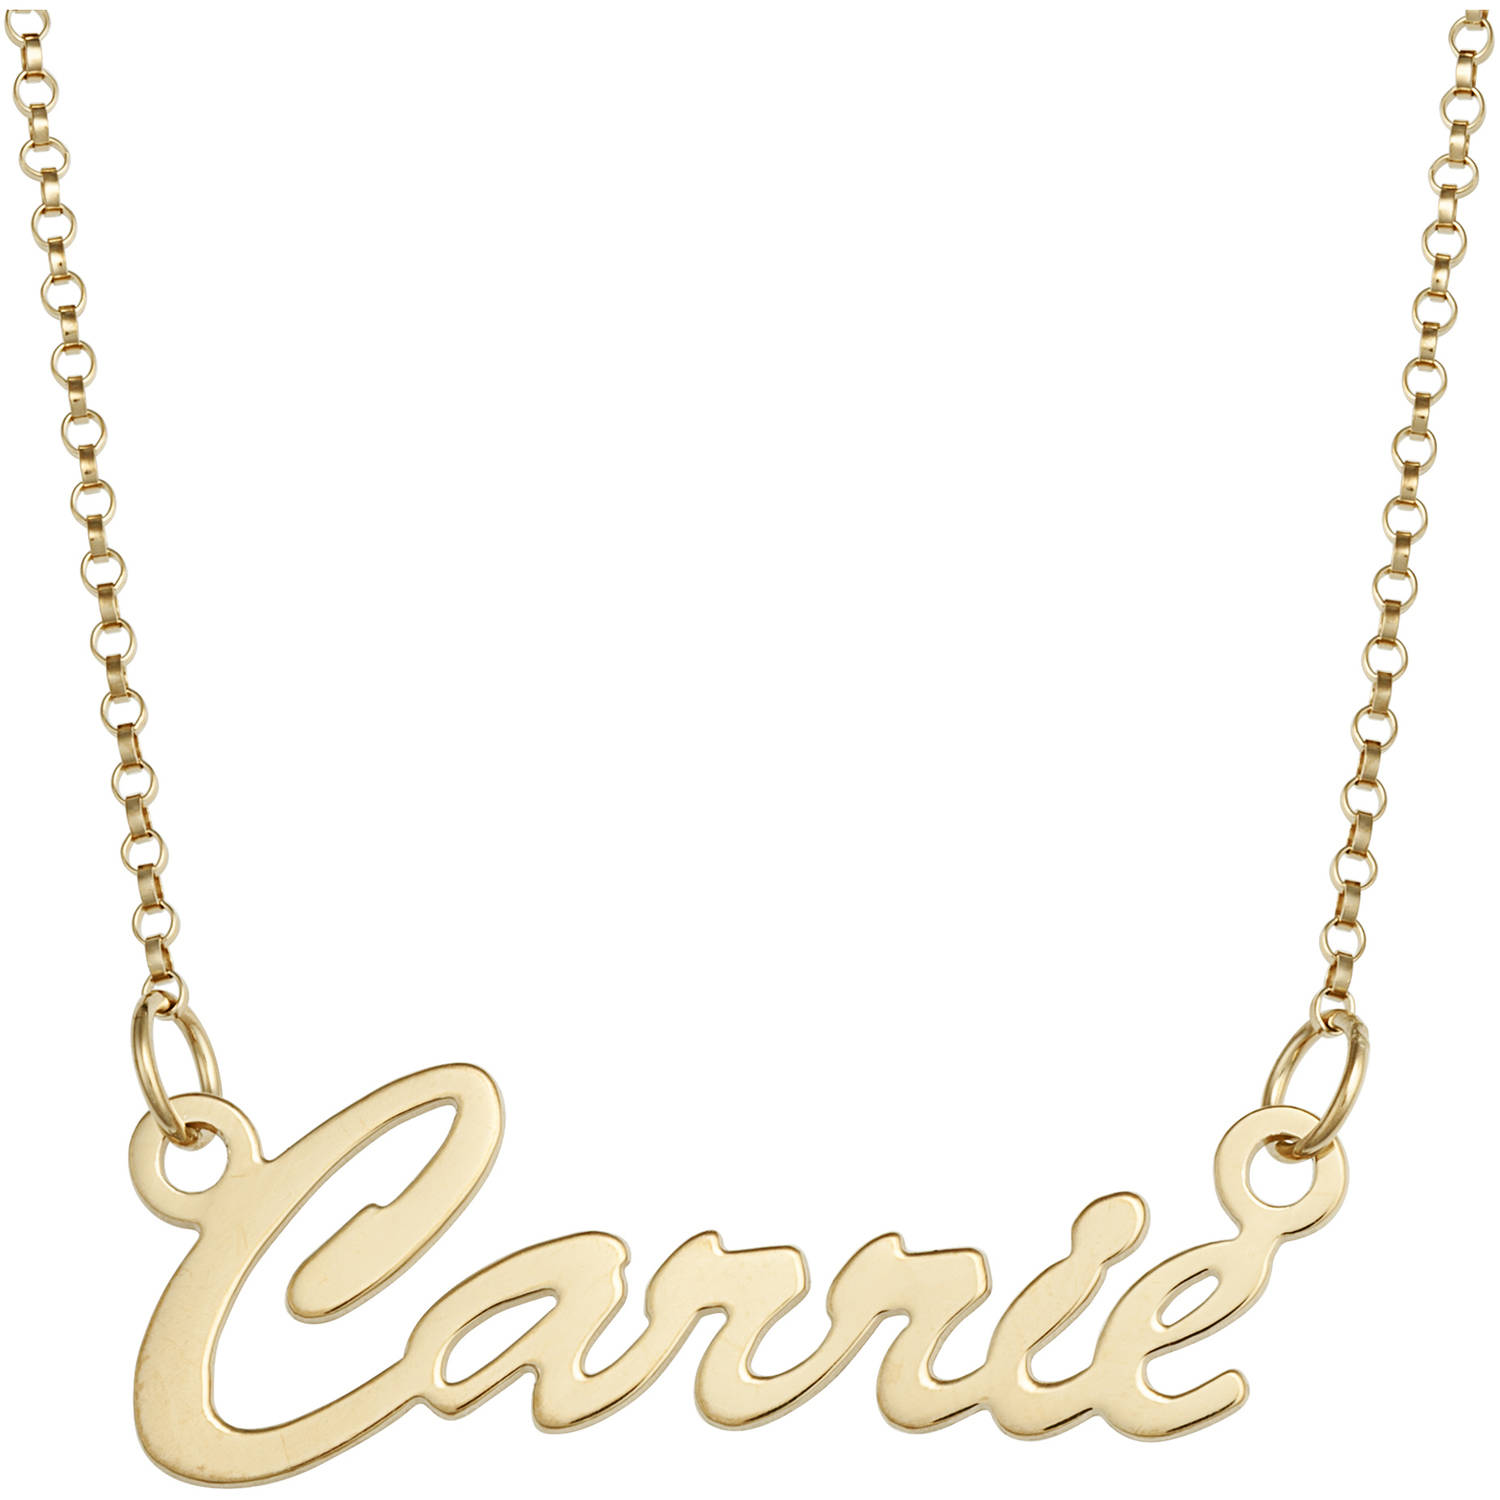 Personalized Premium 14kt Gold over Sterling Hollywood Script Nameplate Necklace, 18″, 1mm thickness